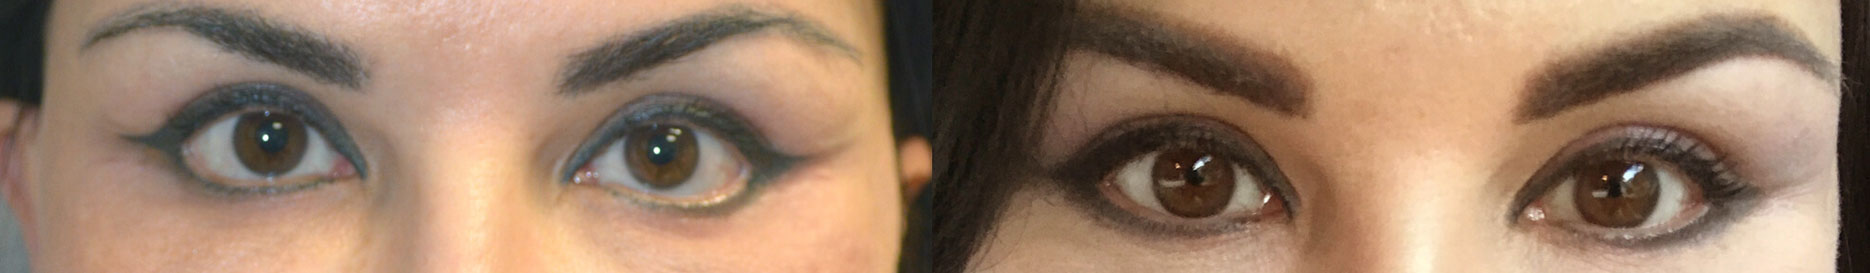 47-year-old Russian female, with post-blepharoplasty lower eyelid retraction and sclera show and rounded eyes, underwent revision eyelid surgery with lower eyelid retraction surgery (internal eyelid lift, alloderm spacer graft, canthoplasty) to restore almond eye shape. Before and 3 months after lower eyelid retraction repair photos are shown.